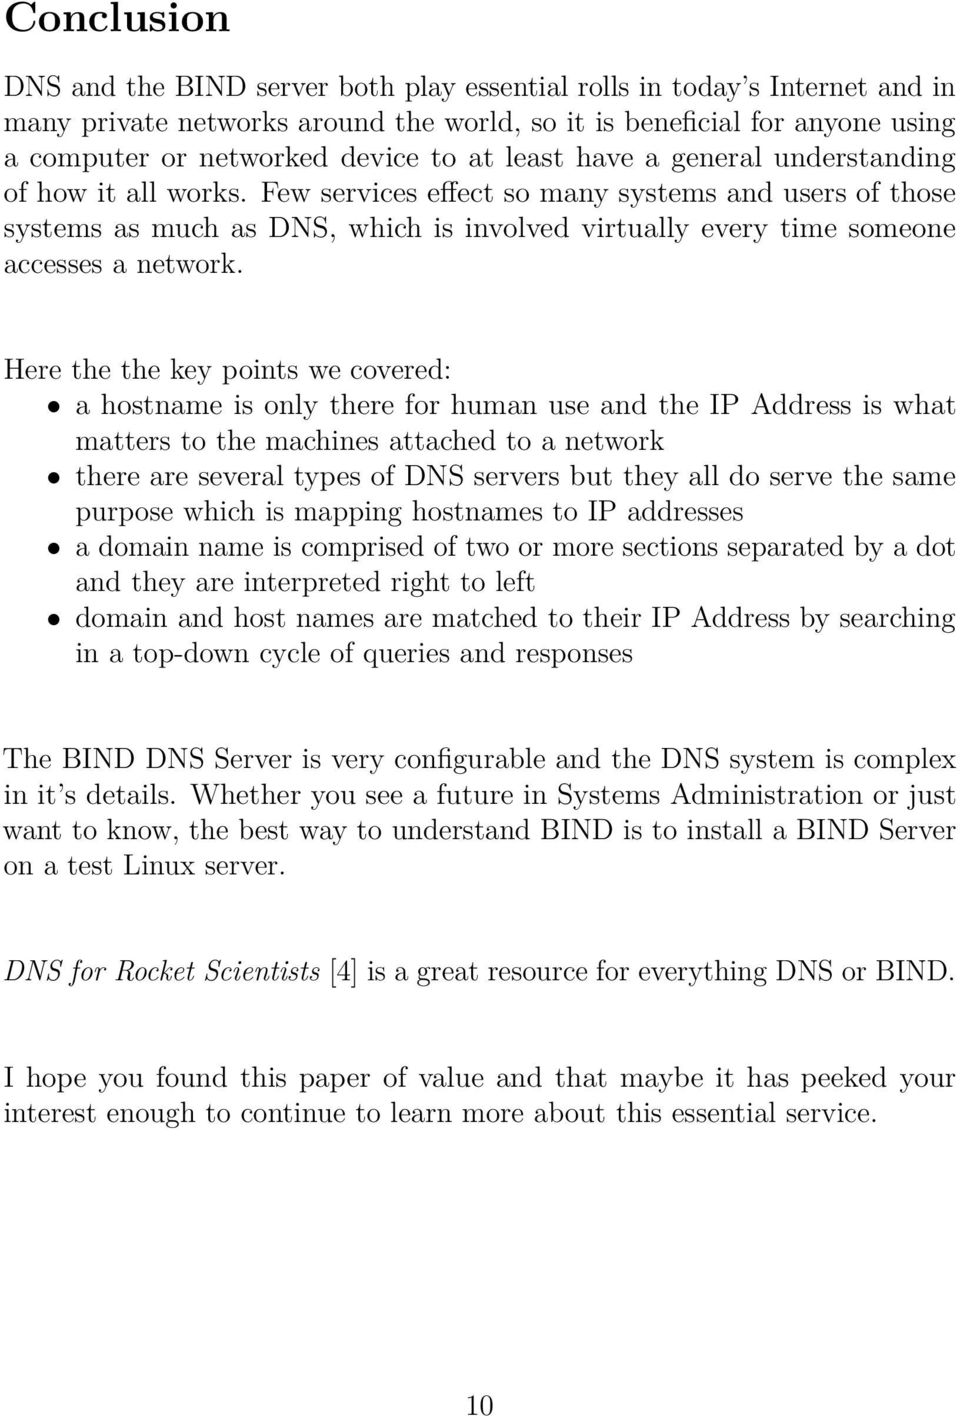 Few services effect so many systems and users of those systems as much as DNS, which is involved virtually every time someone accesses a network.